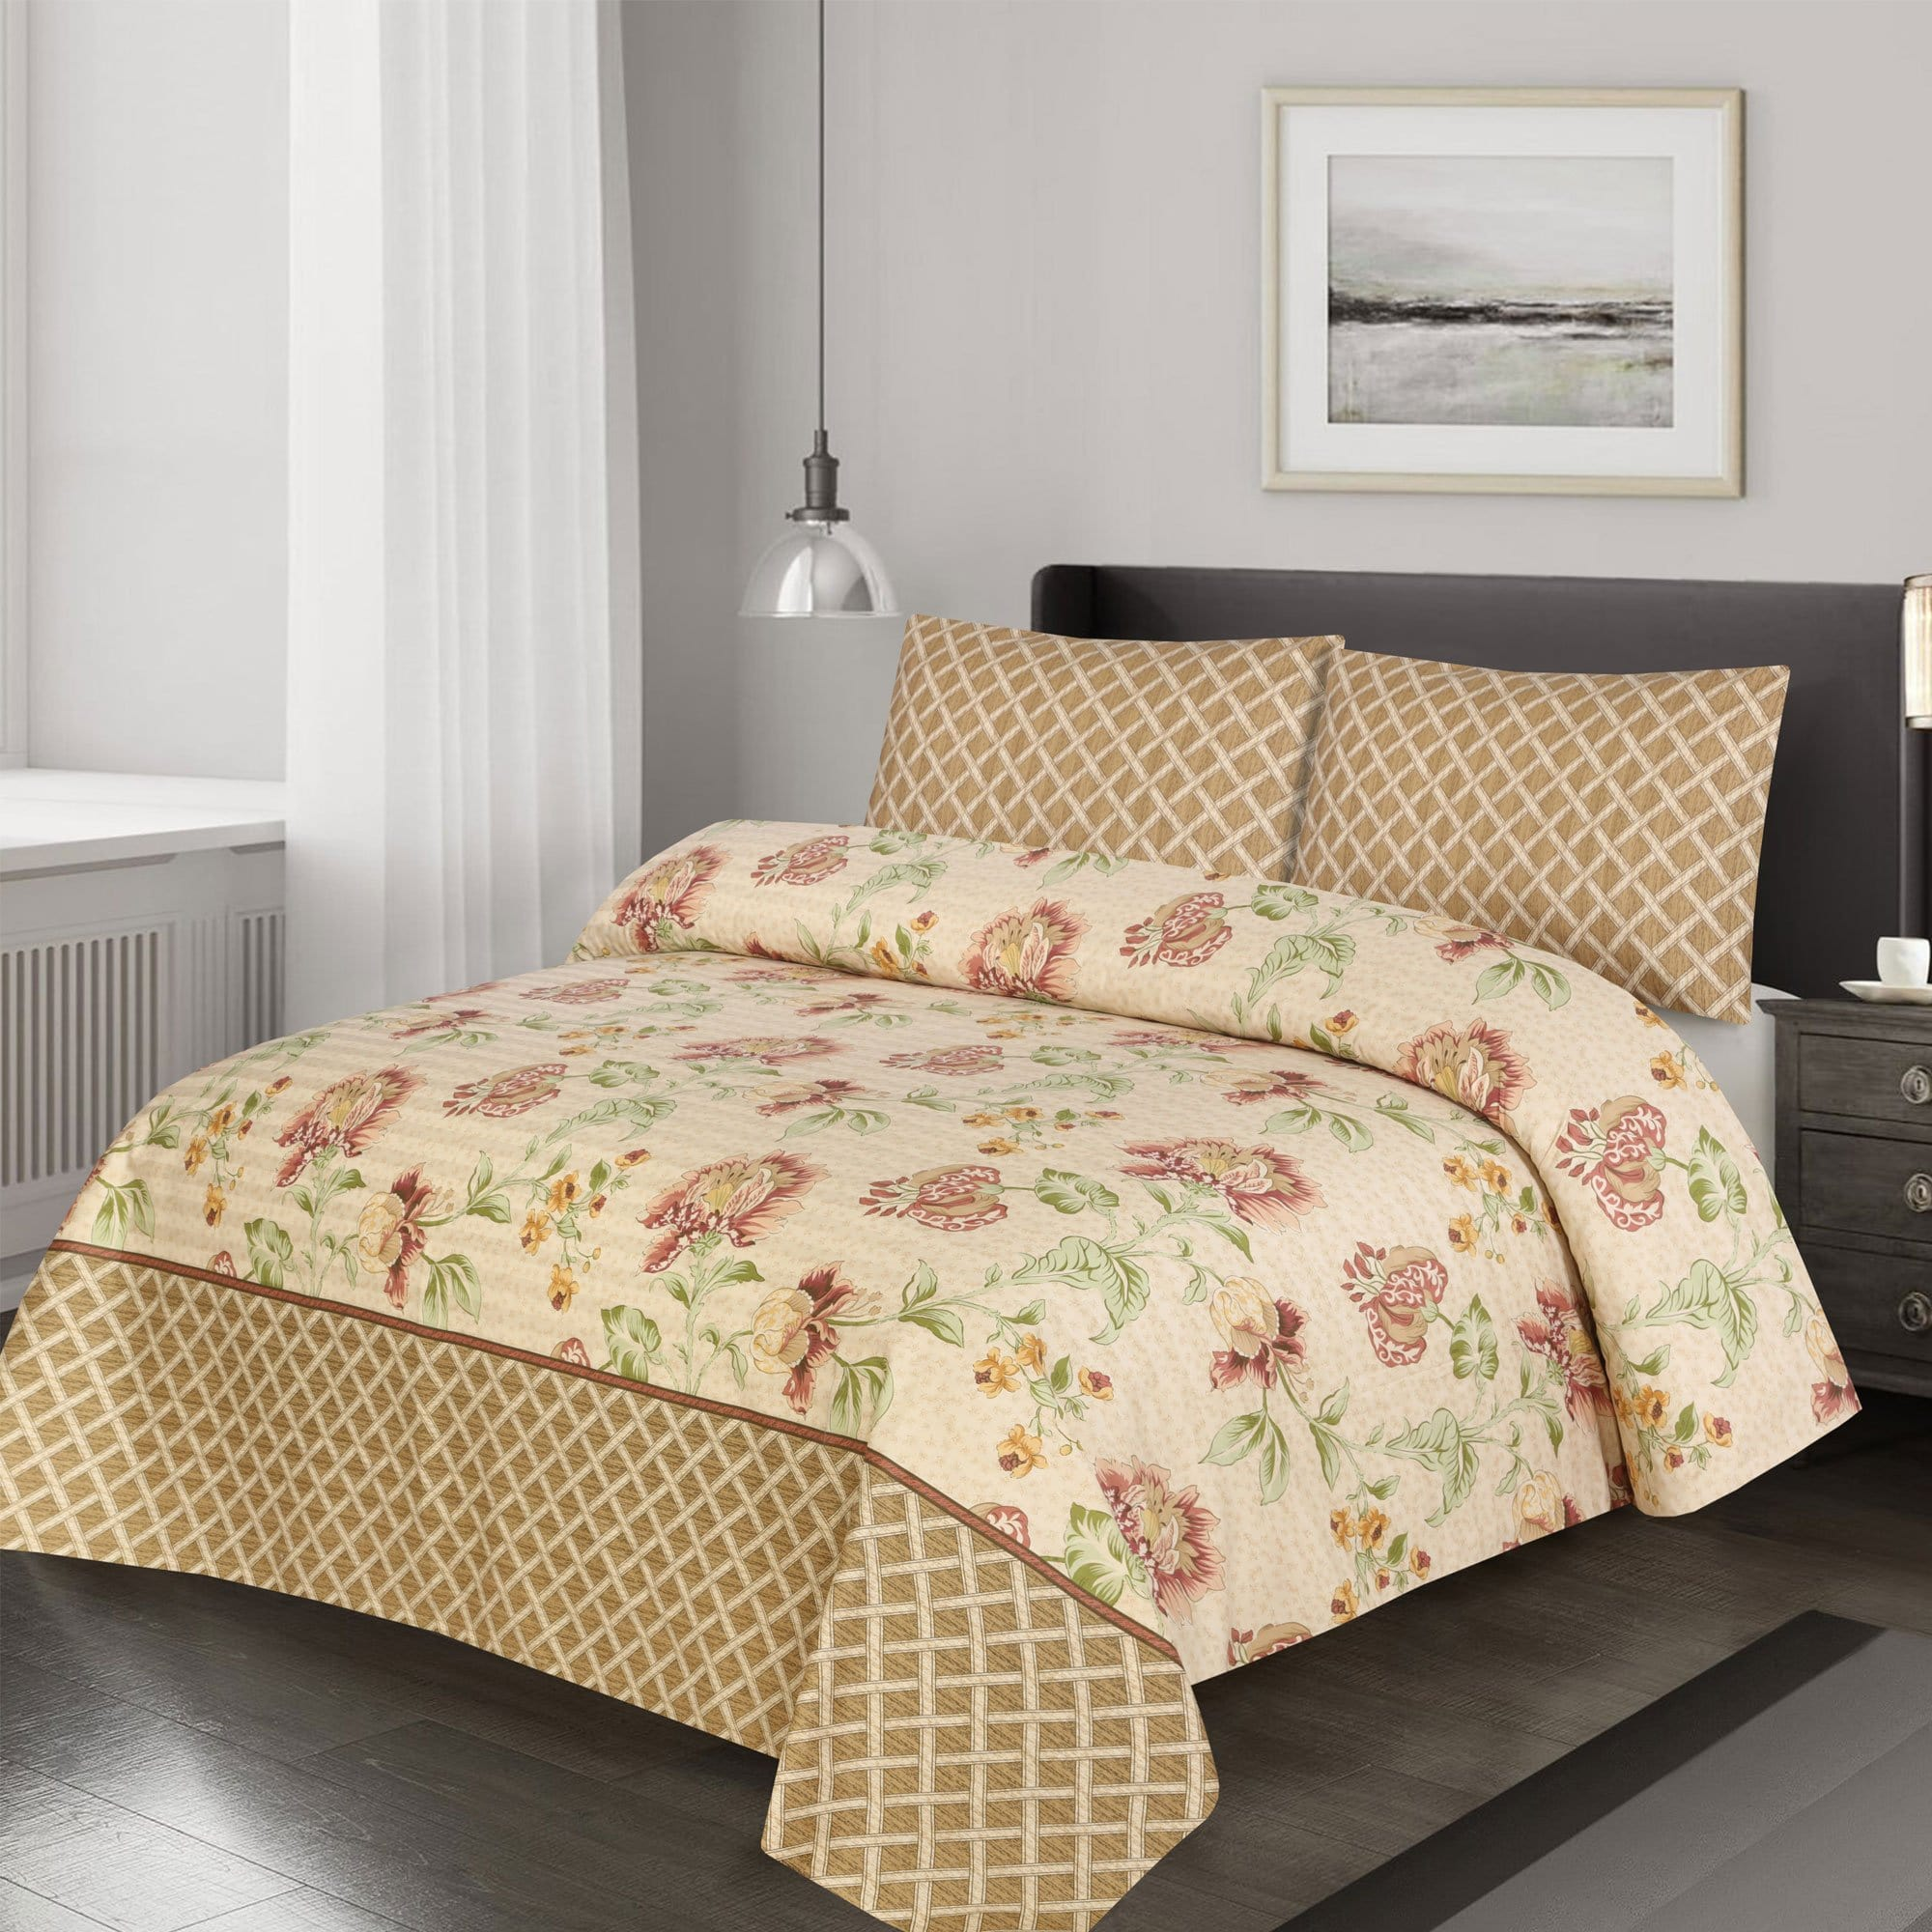 Grace D381-Cotton Satin 6 pc summer Comforter Set with 4 pillow covers